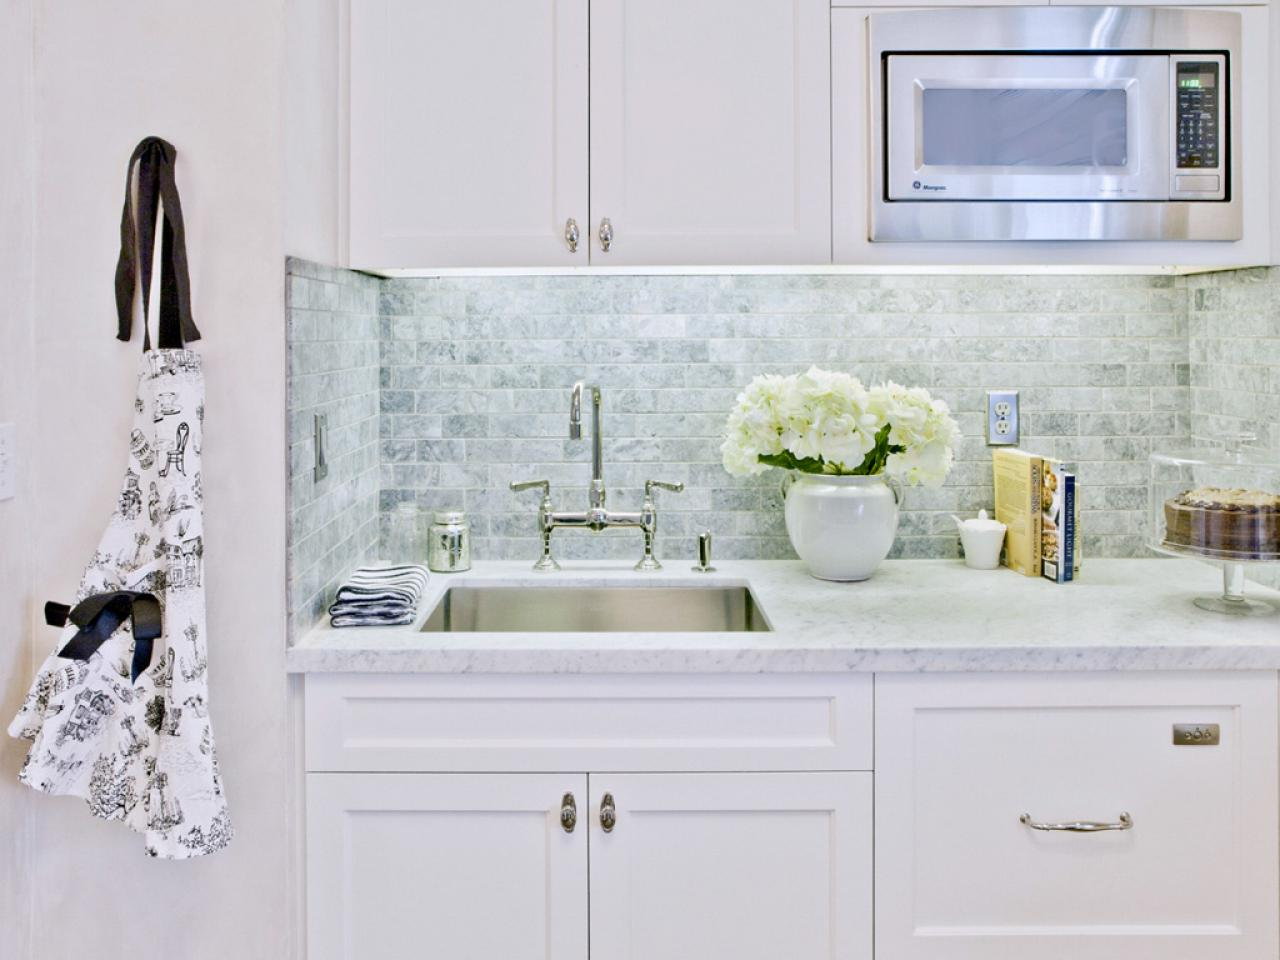 Elegant Subway Tile Backsplashes subway tile kitchen backsplash